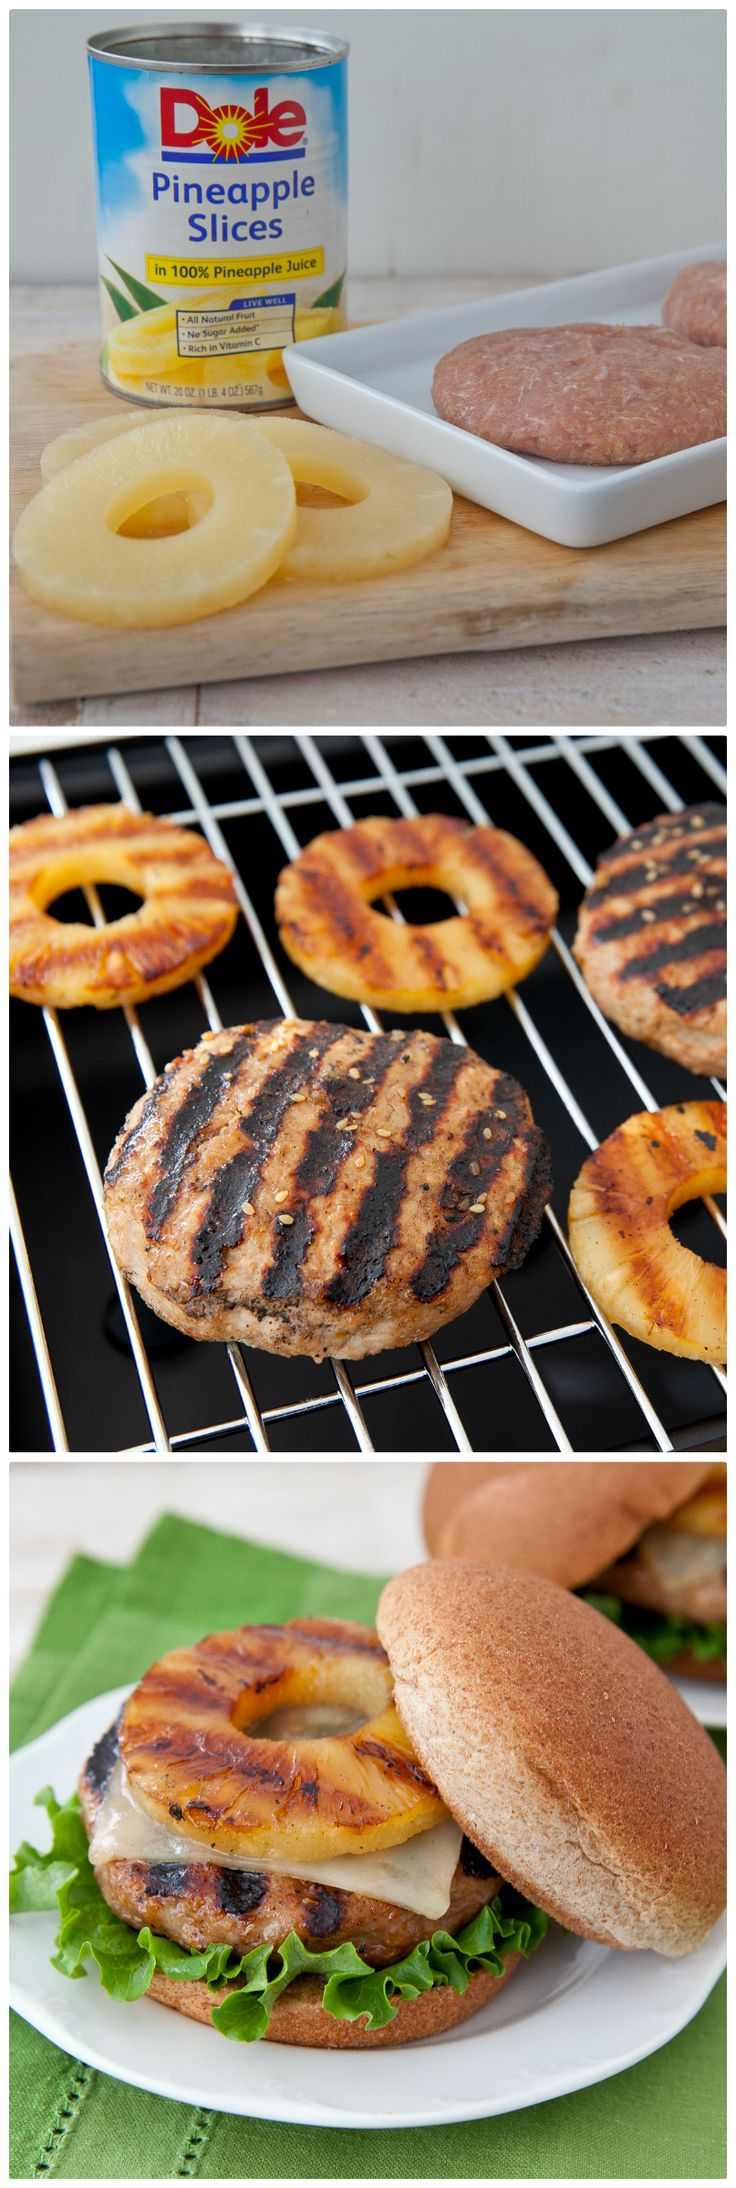 Like a grilled pineapple....Teriyaki Pineapple Turkey Burger!...use the same in a veggie burger option